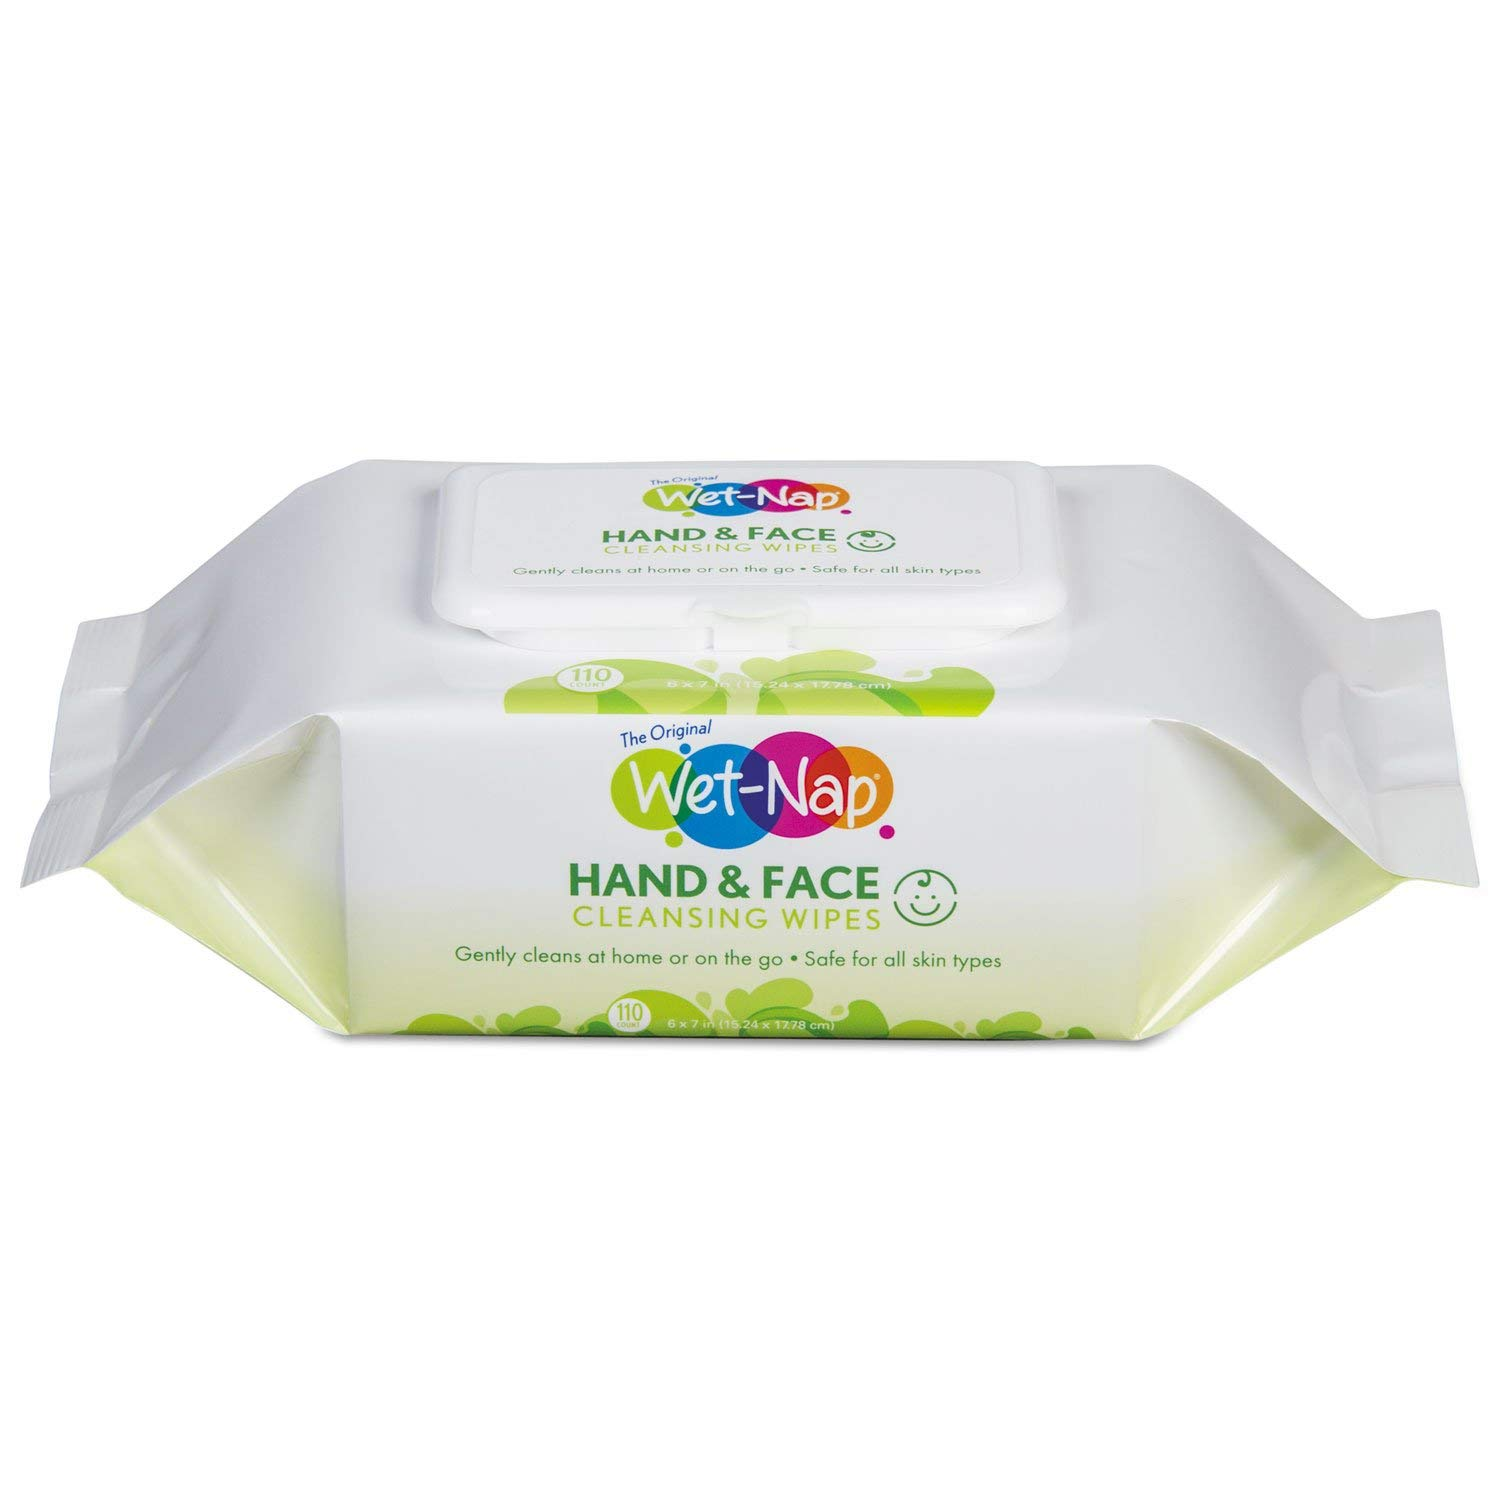 Wet-Nap M970SHCT Hands and Face Cleansing Wipes, 7 x 6, White, Fragrance-Free, 110/Pk, 6 Pk/Ctn